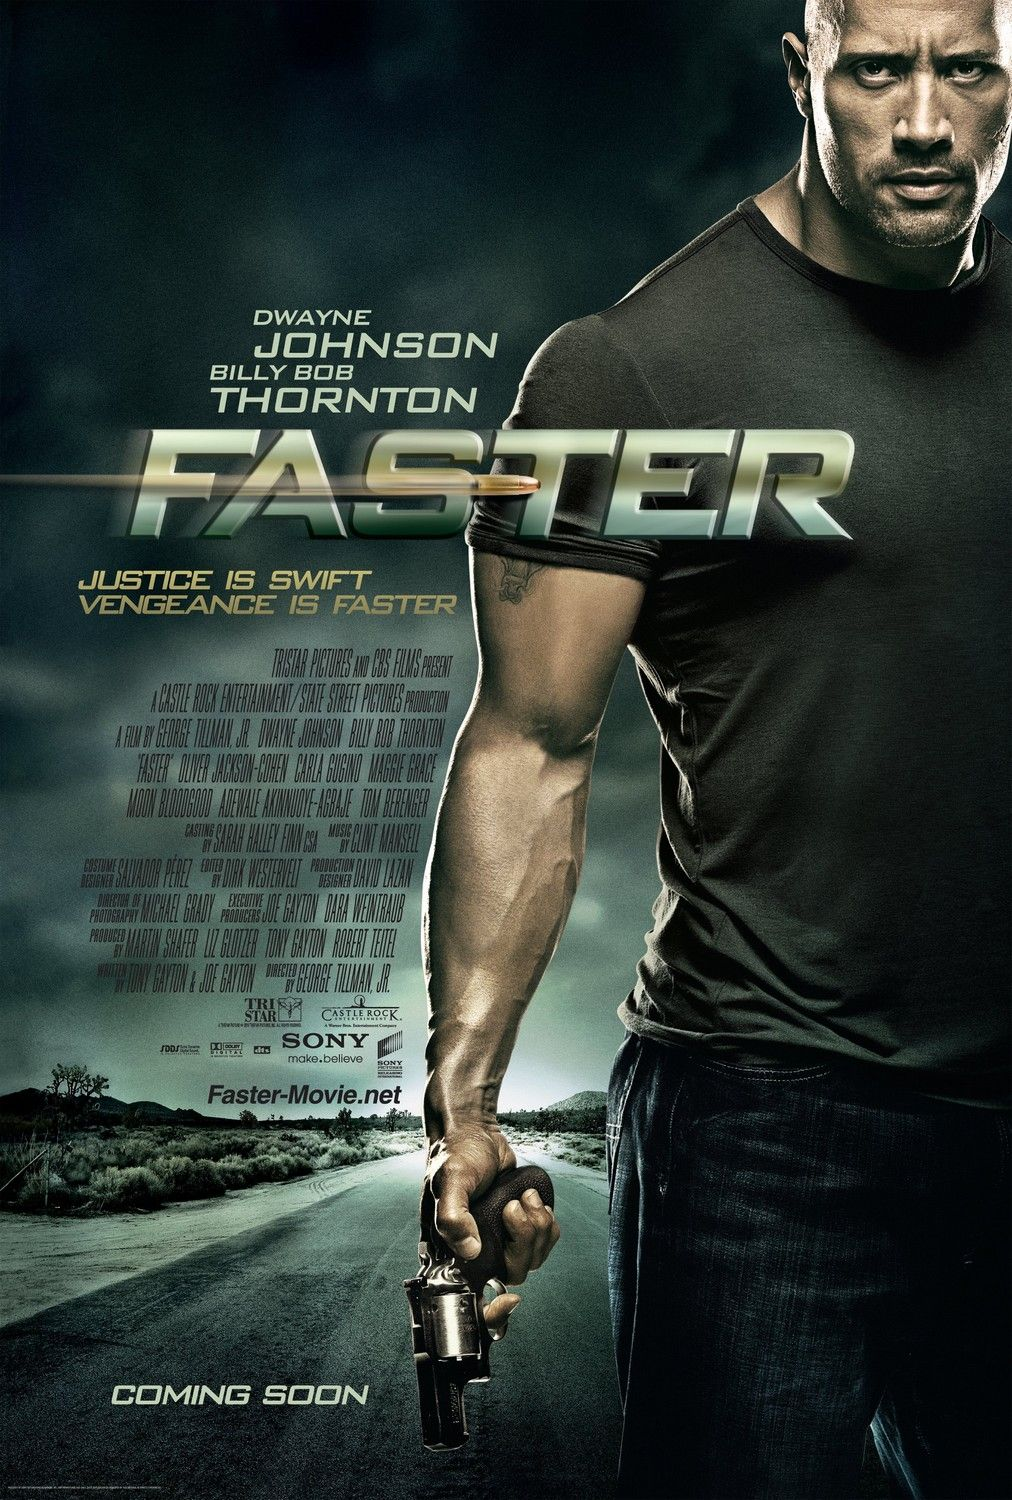 Dwayne Johnson Faster Movie.jpg